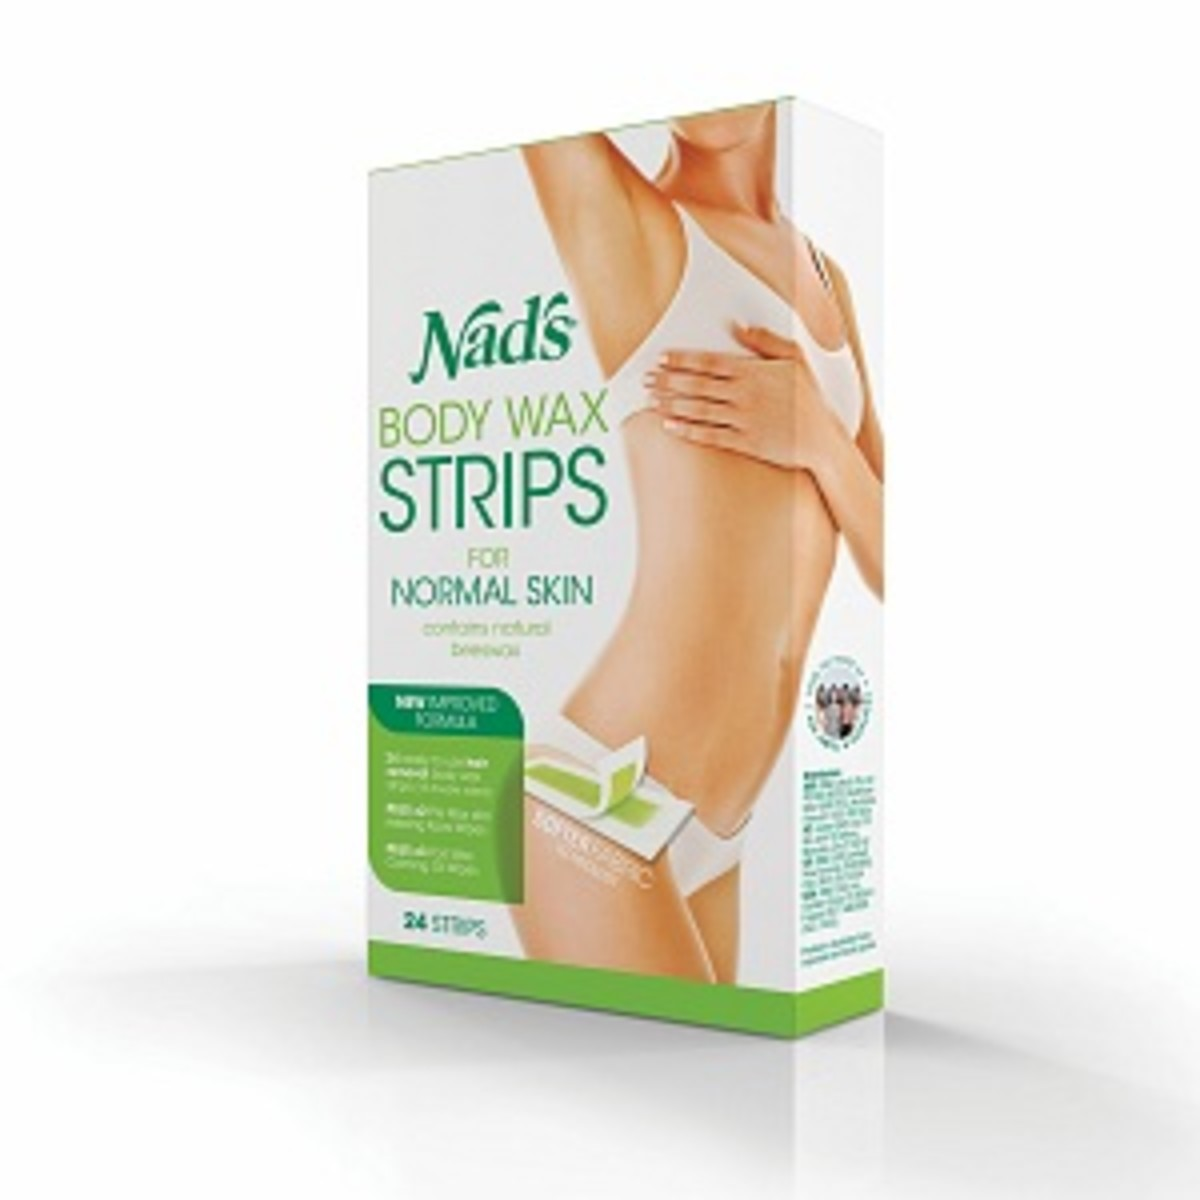 The Best Home Waxing Product: Best Leg Wax. Great for Hirsutism or PCOS hair removal solutions.